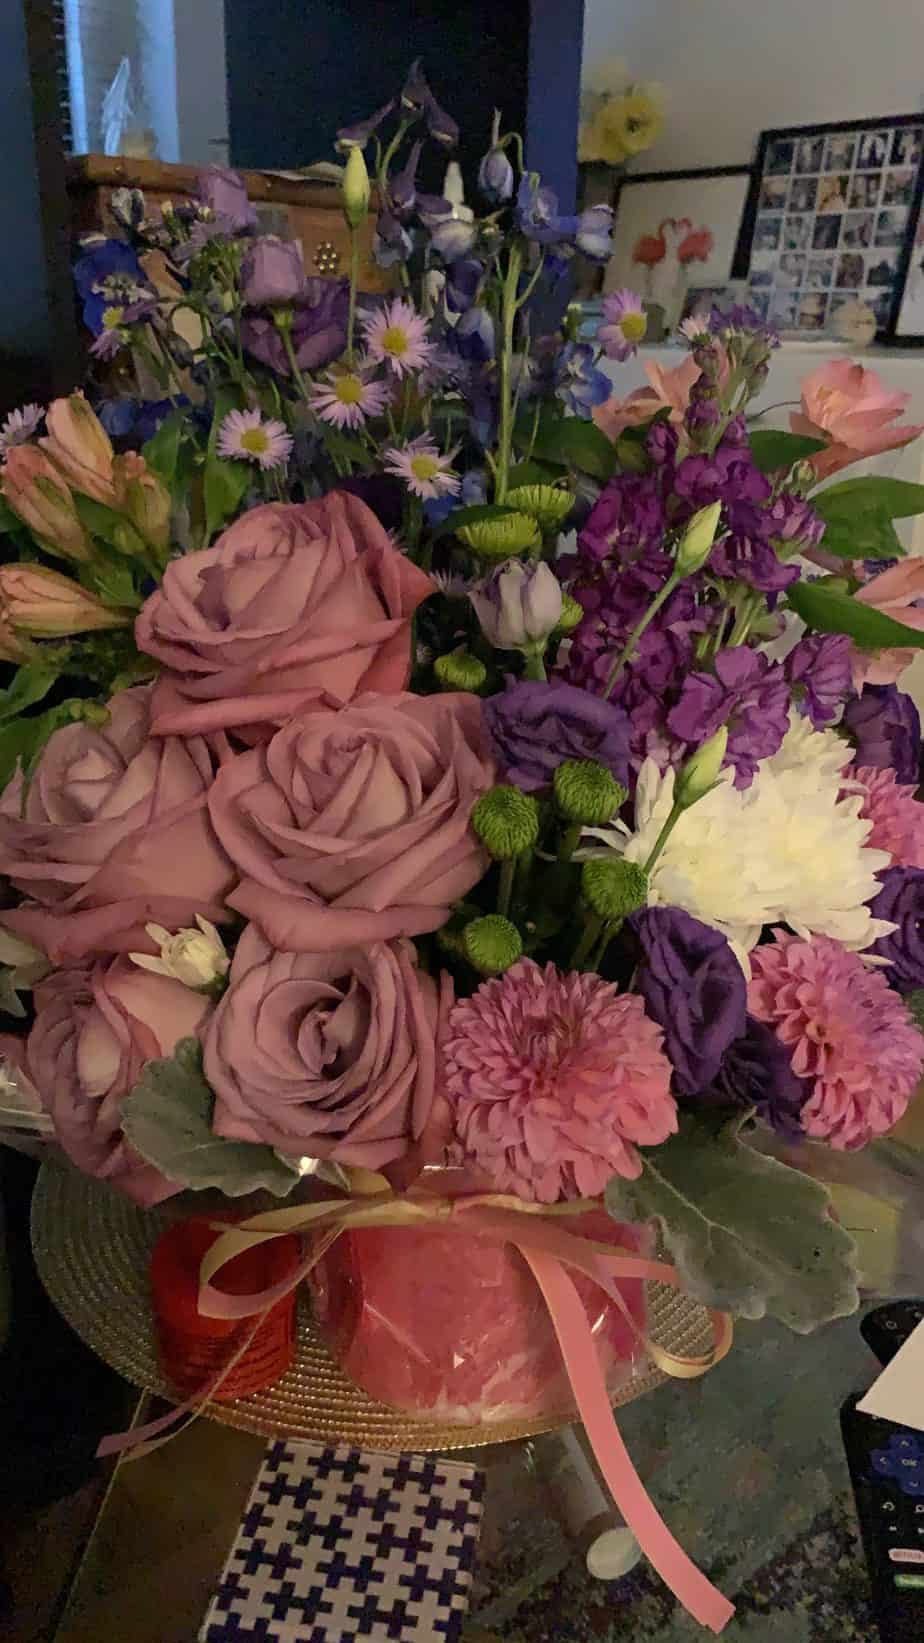 bouquet of flowers in pinks and purples